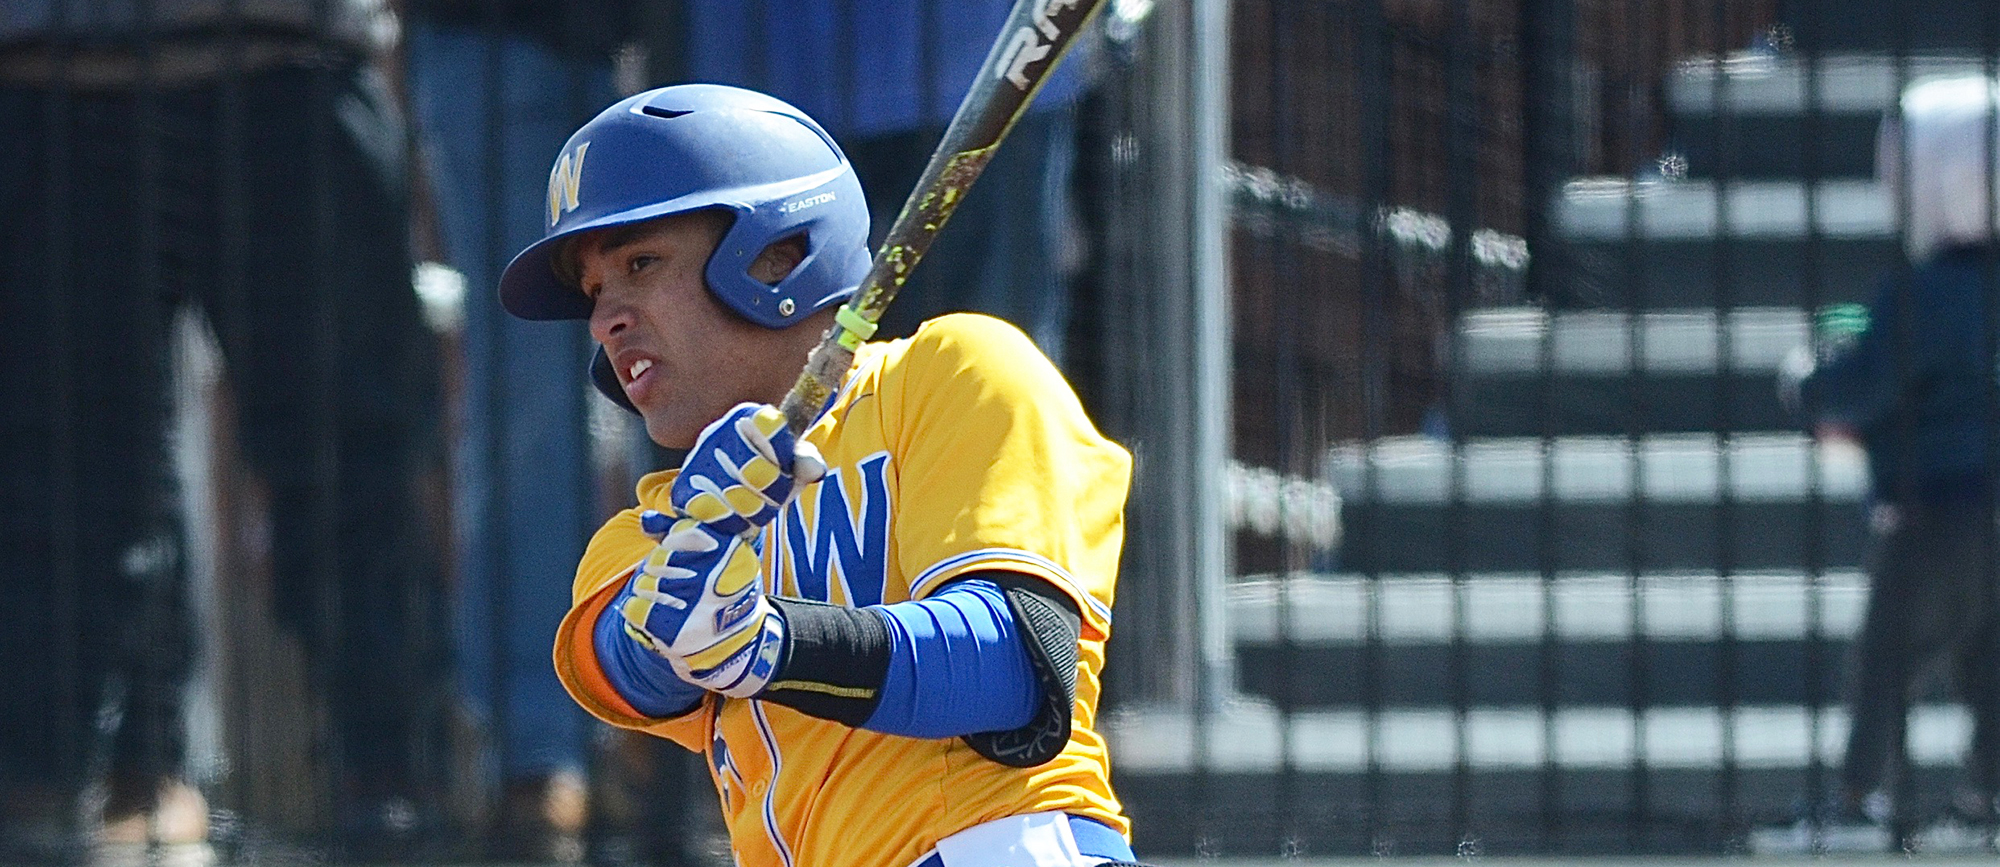 Senior Aaron Rios recorded a two-run double in Western New England's 6-5 loss to Suffolk on Wednesday. (Photo by Jim Balderston)